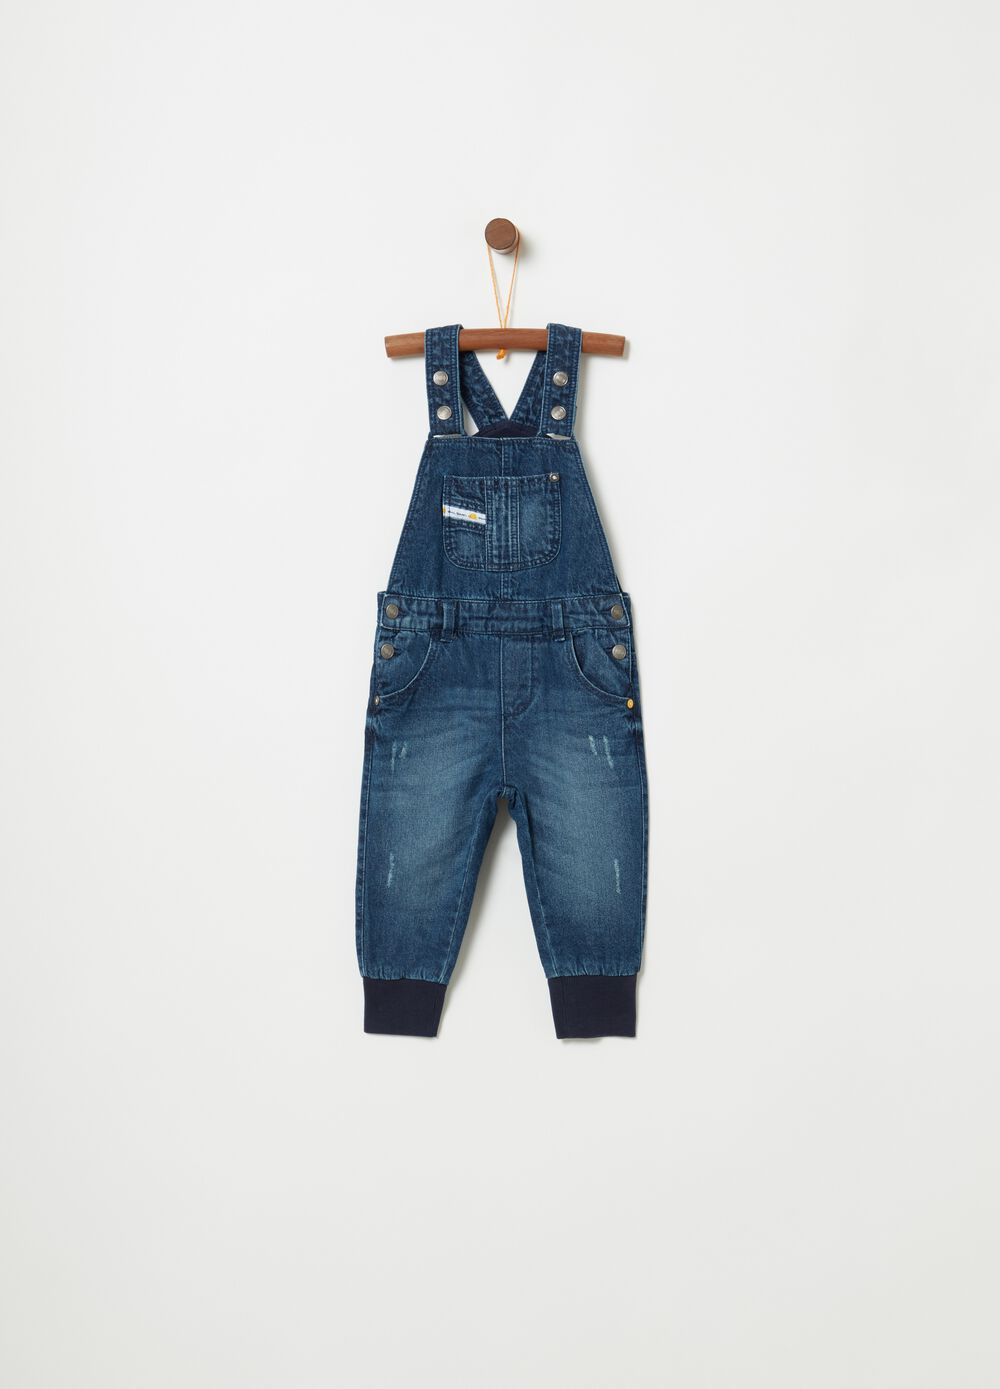 Dungarees in 100% cotton denim